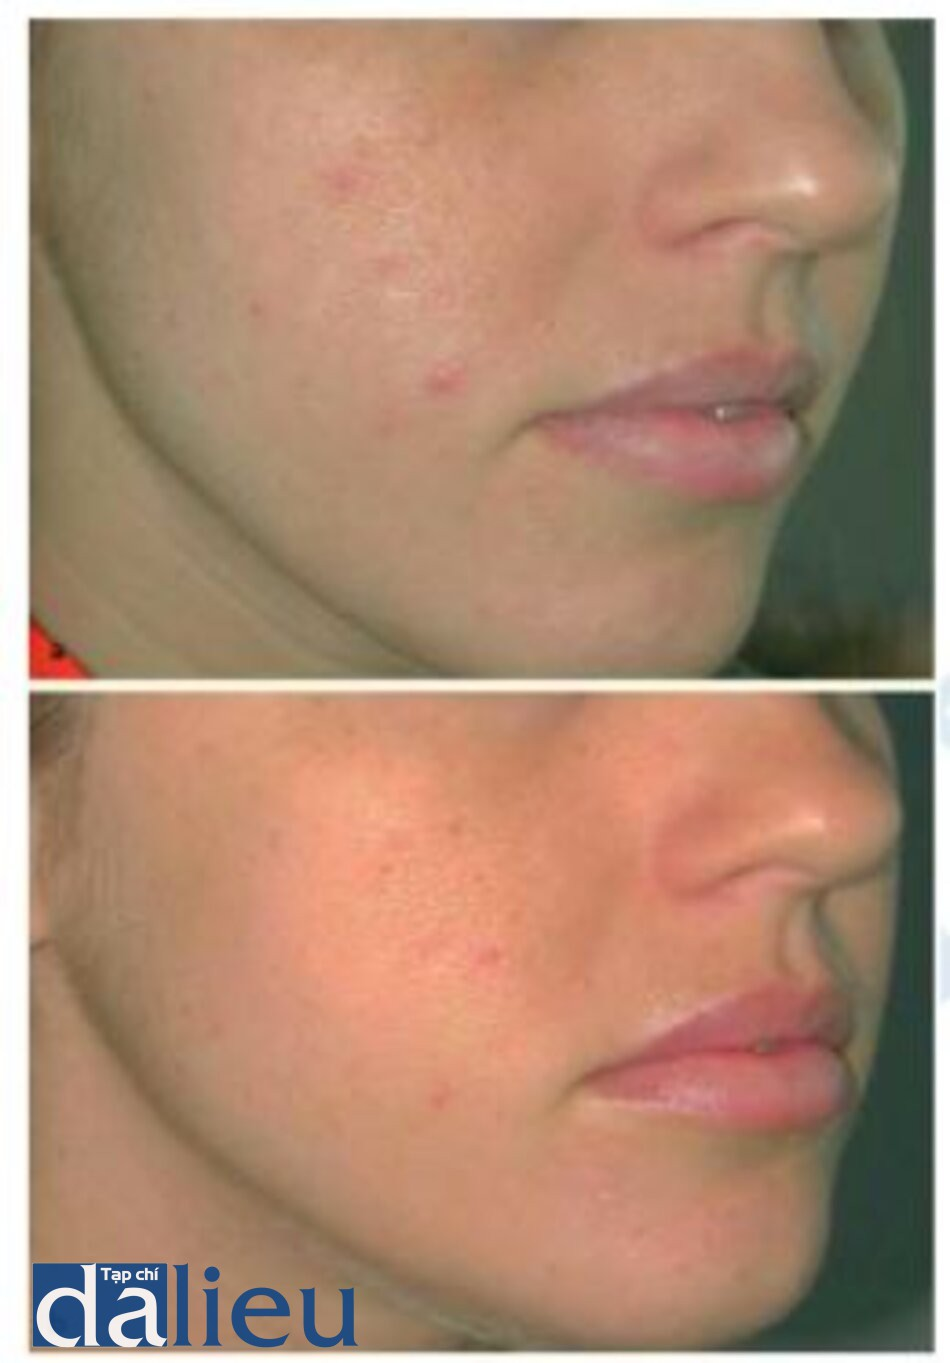 Fìg. 1.30 a, b. Mild acne and acne scarring a before and b after a single treatment with the 1450 nm diode laser